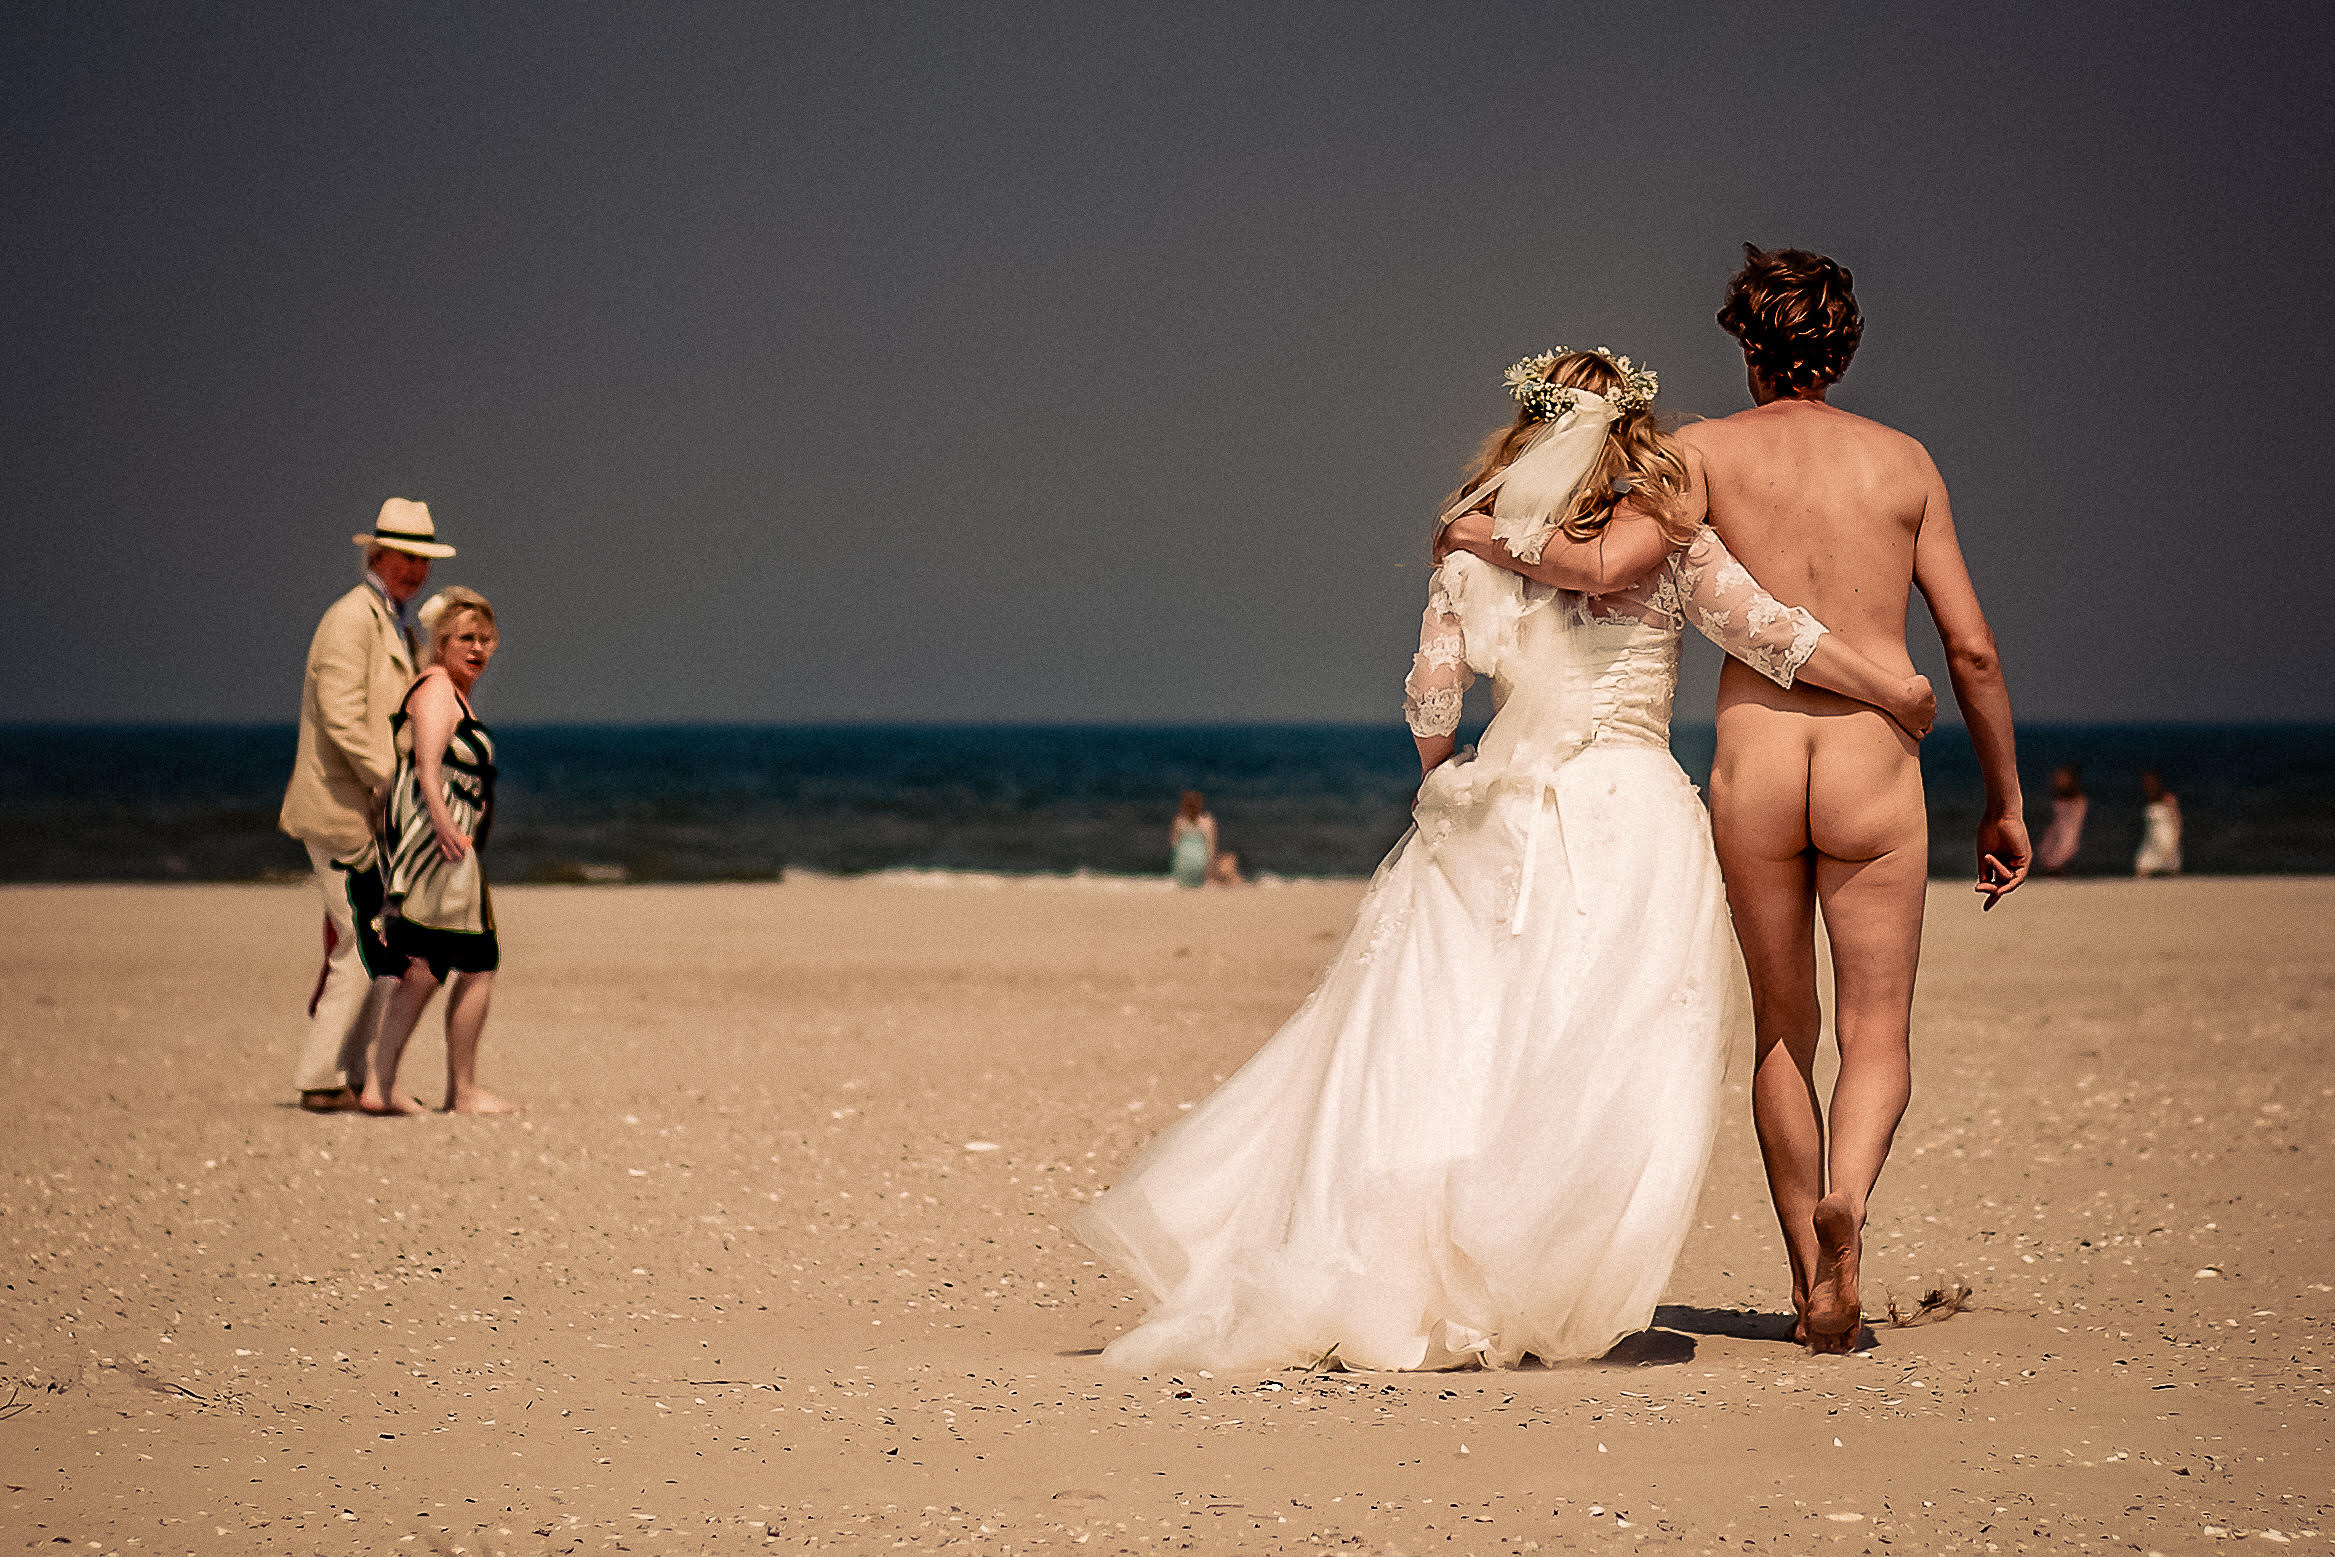 Naked-groom-on-beach-with-bride-eppel-photography-netherlands